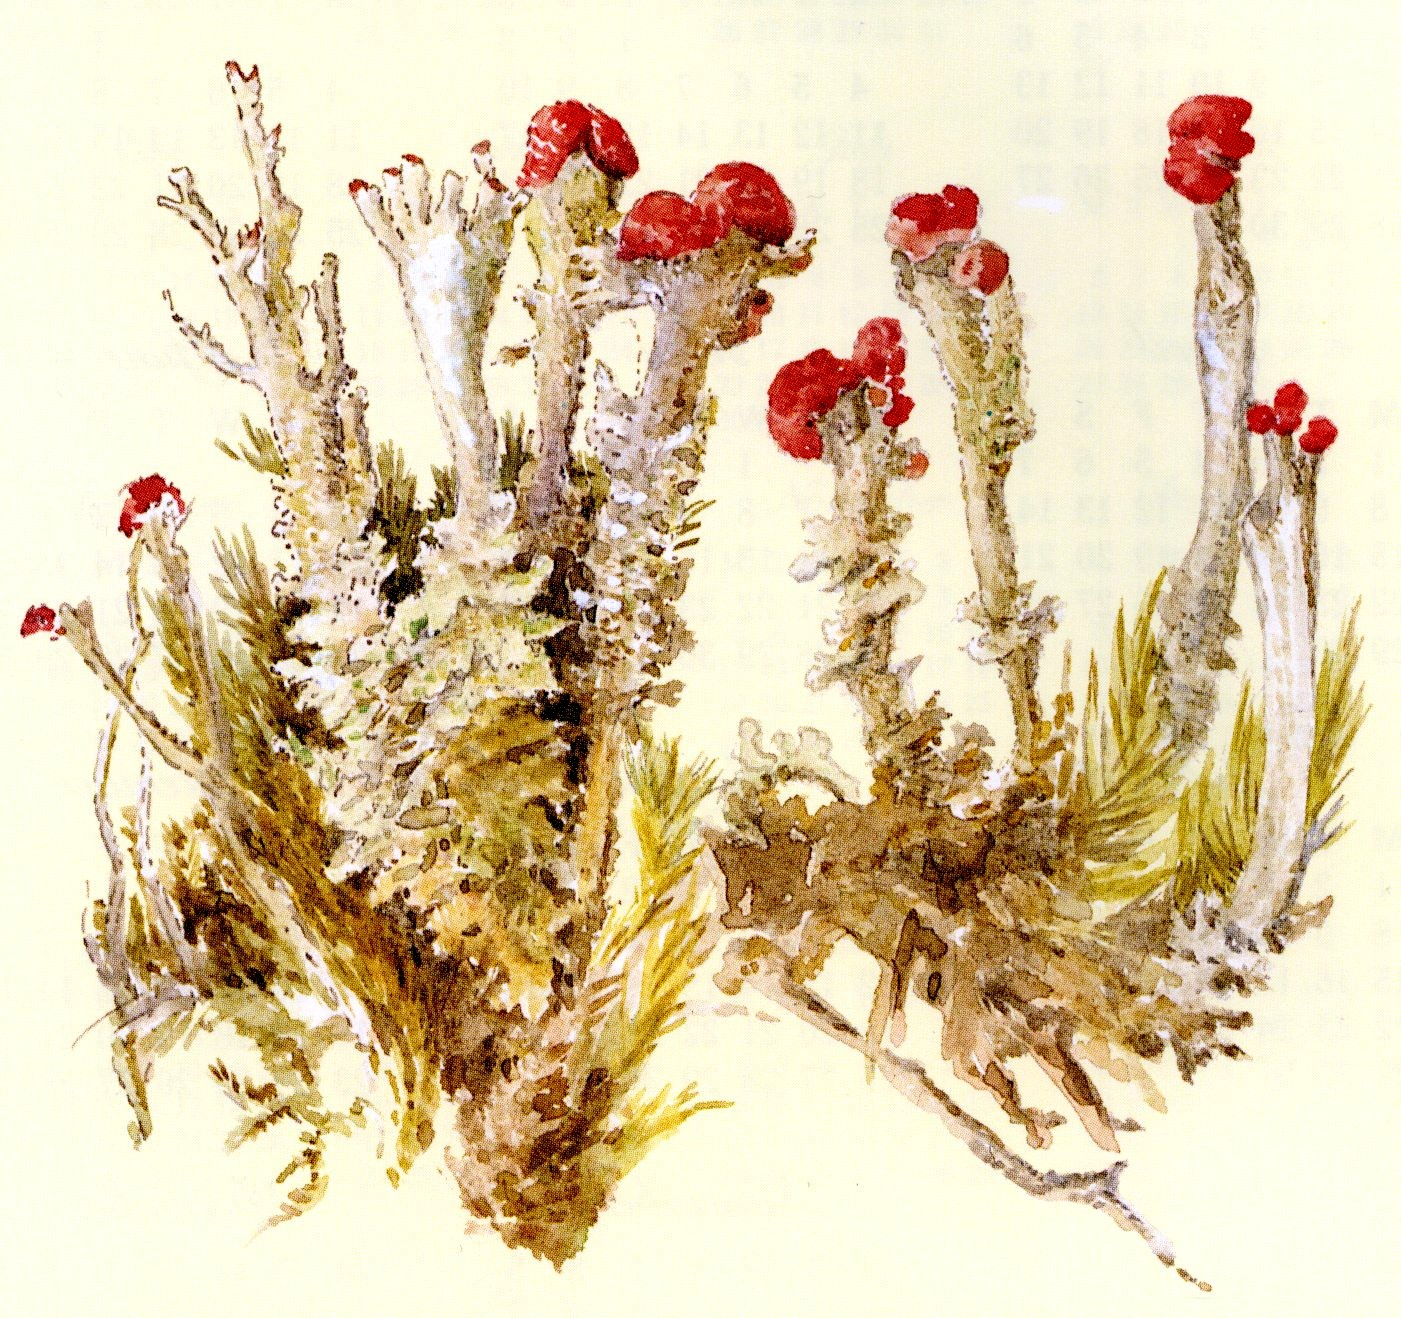 Beatrix Potter was not only one of the greatest children's authors and illustrators ever, she was also one of the greatest botanical illustrators ever, and an accomplished amateur scientist—prevented from publishing her theories on account of her sex.